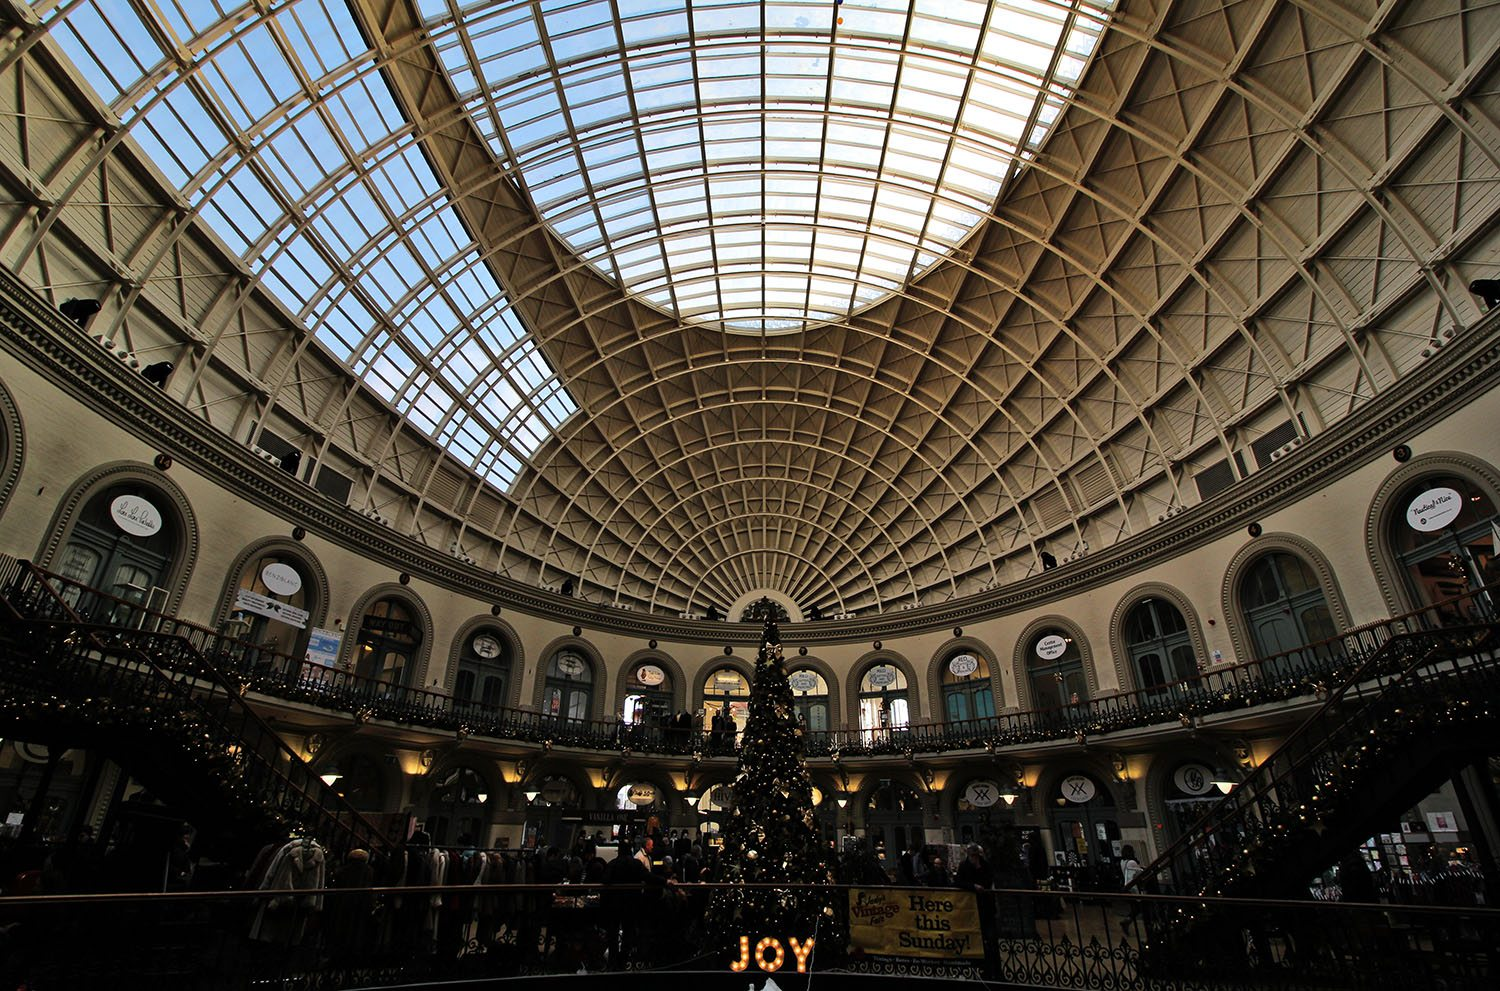 Inside The Corn Exchange